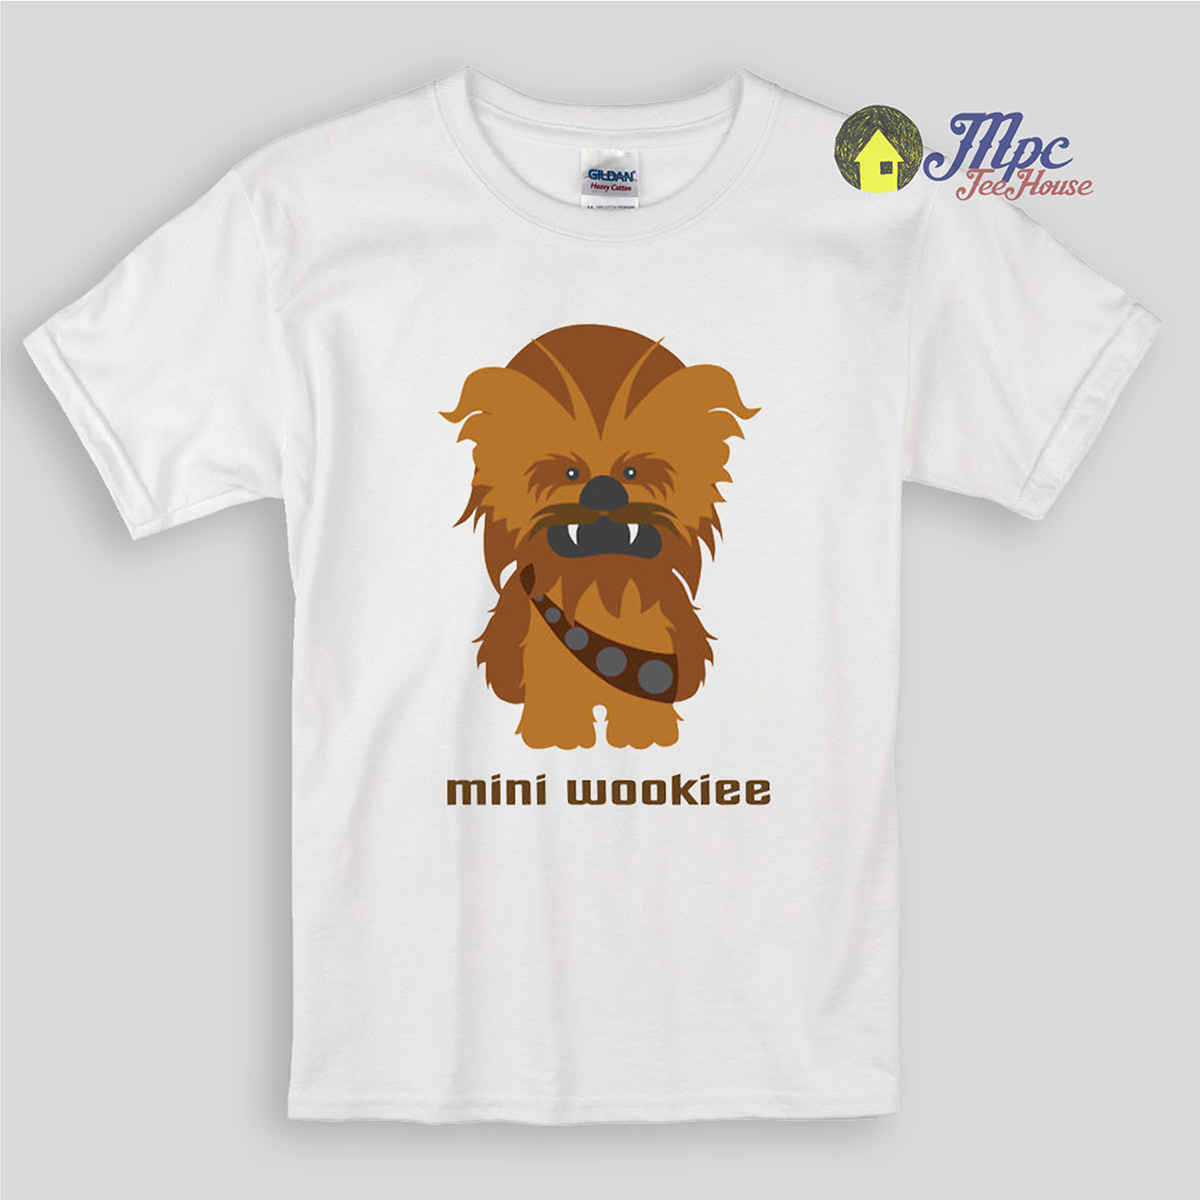 Be Unique. Shop star wars kids t-shirts created by independent artists from around the globe. We print the highest quality star wars kids t-shirts on the internet.